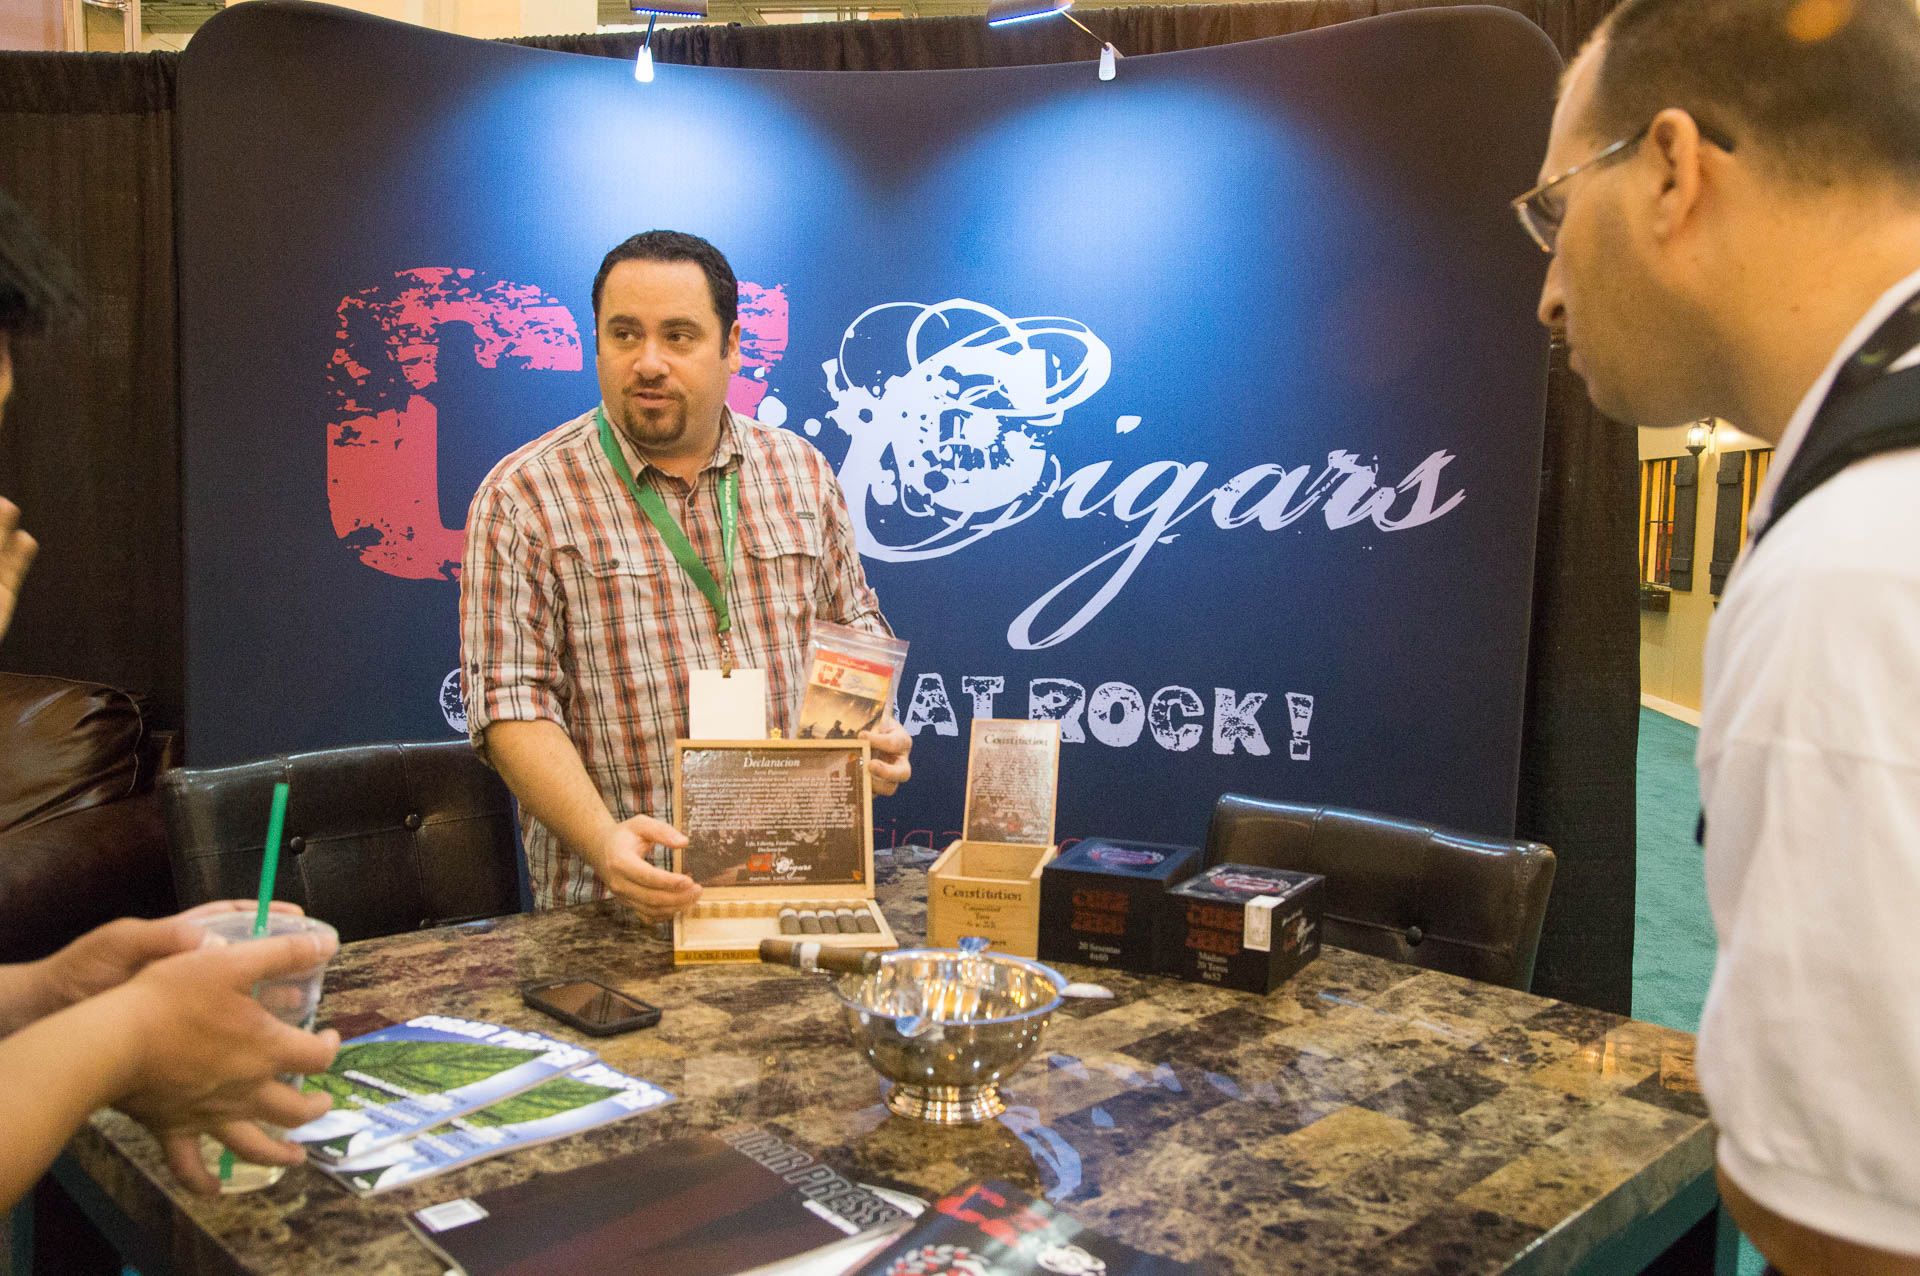 IPCPR: The Show in Pictures 2015 – CZ Cigars